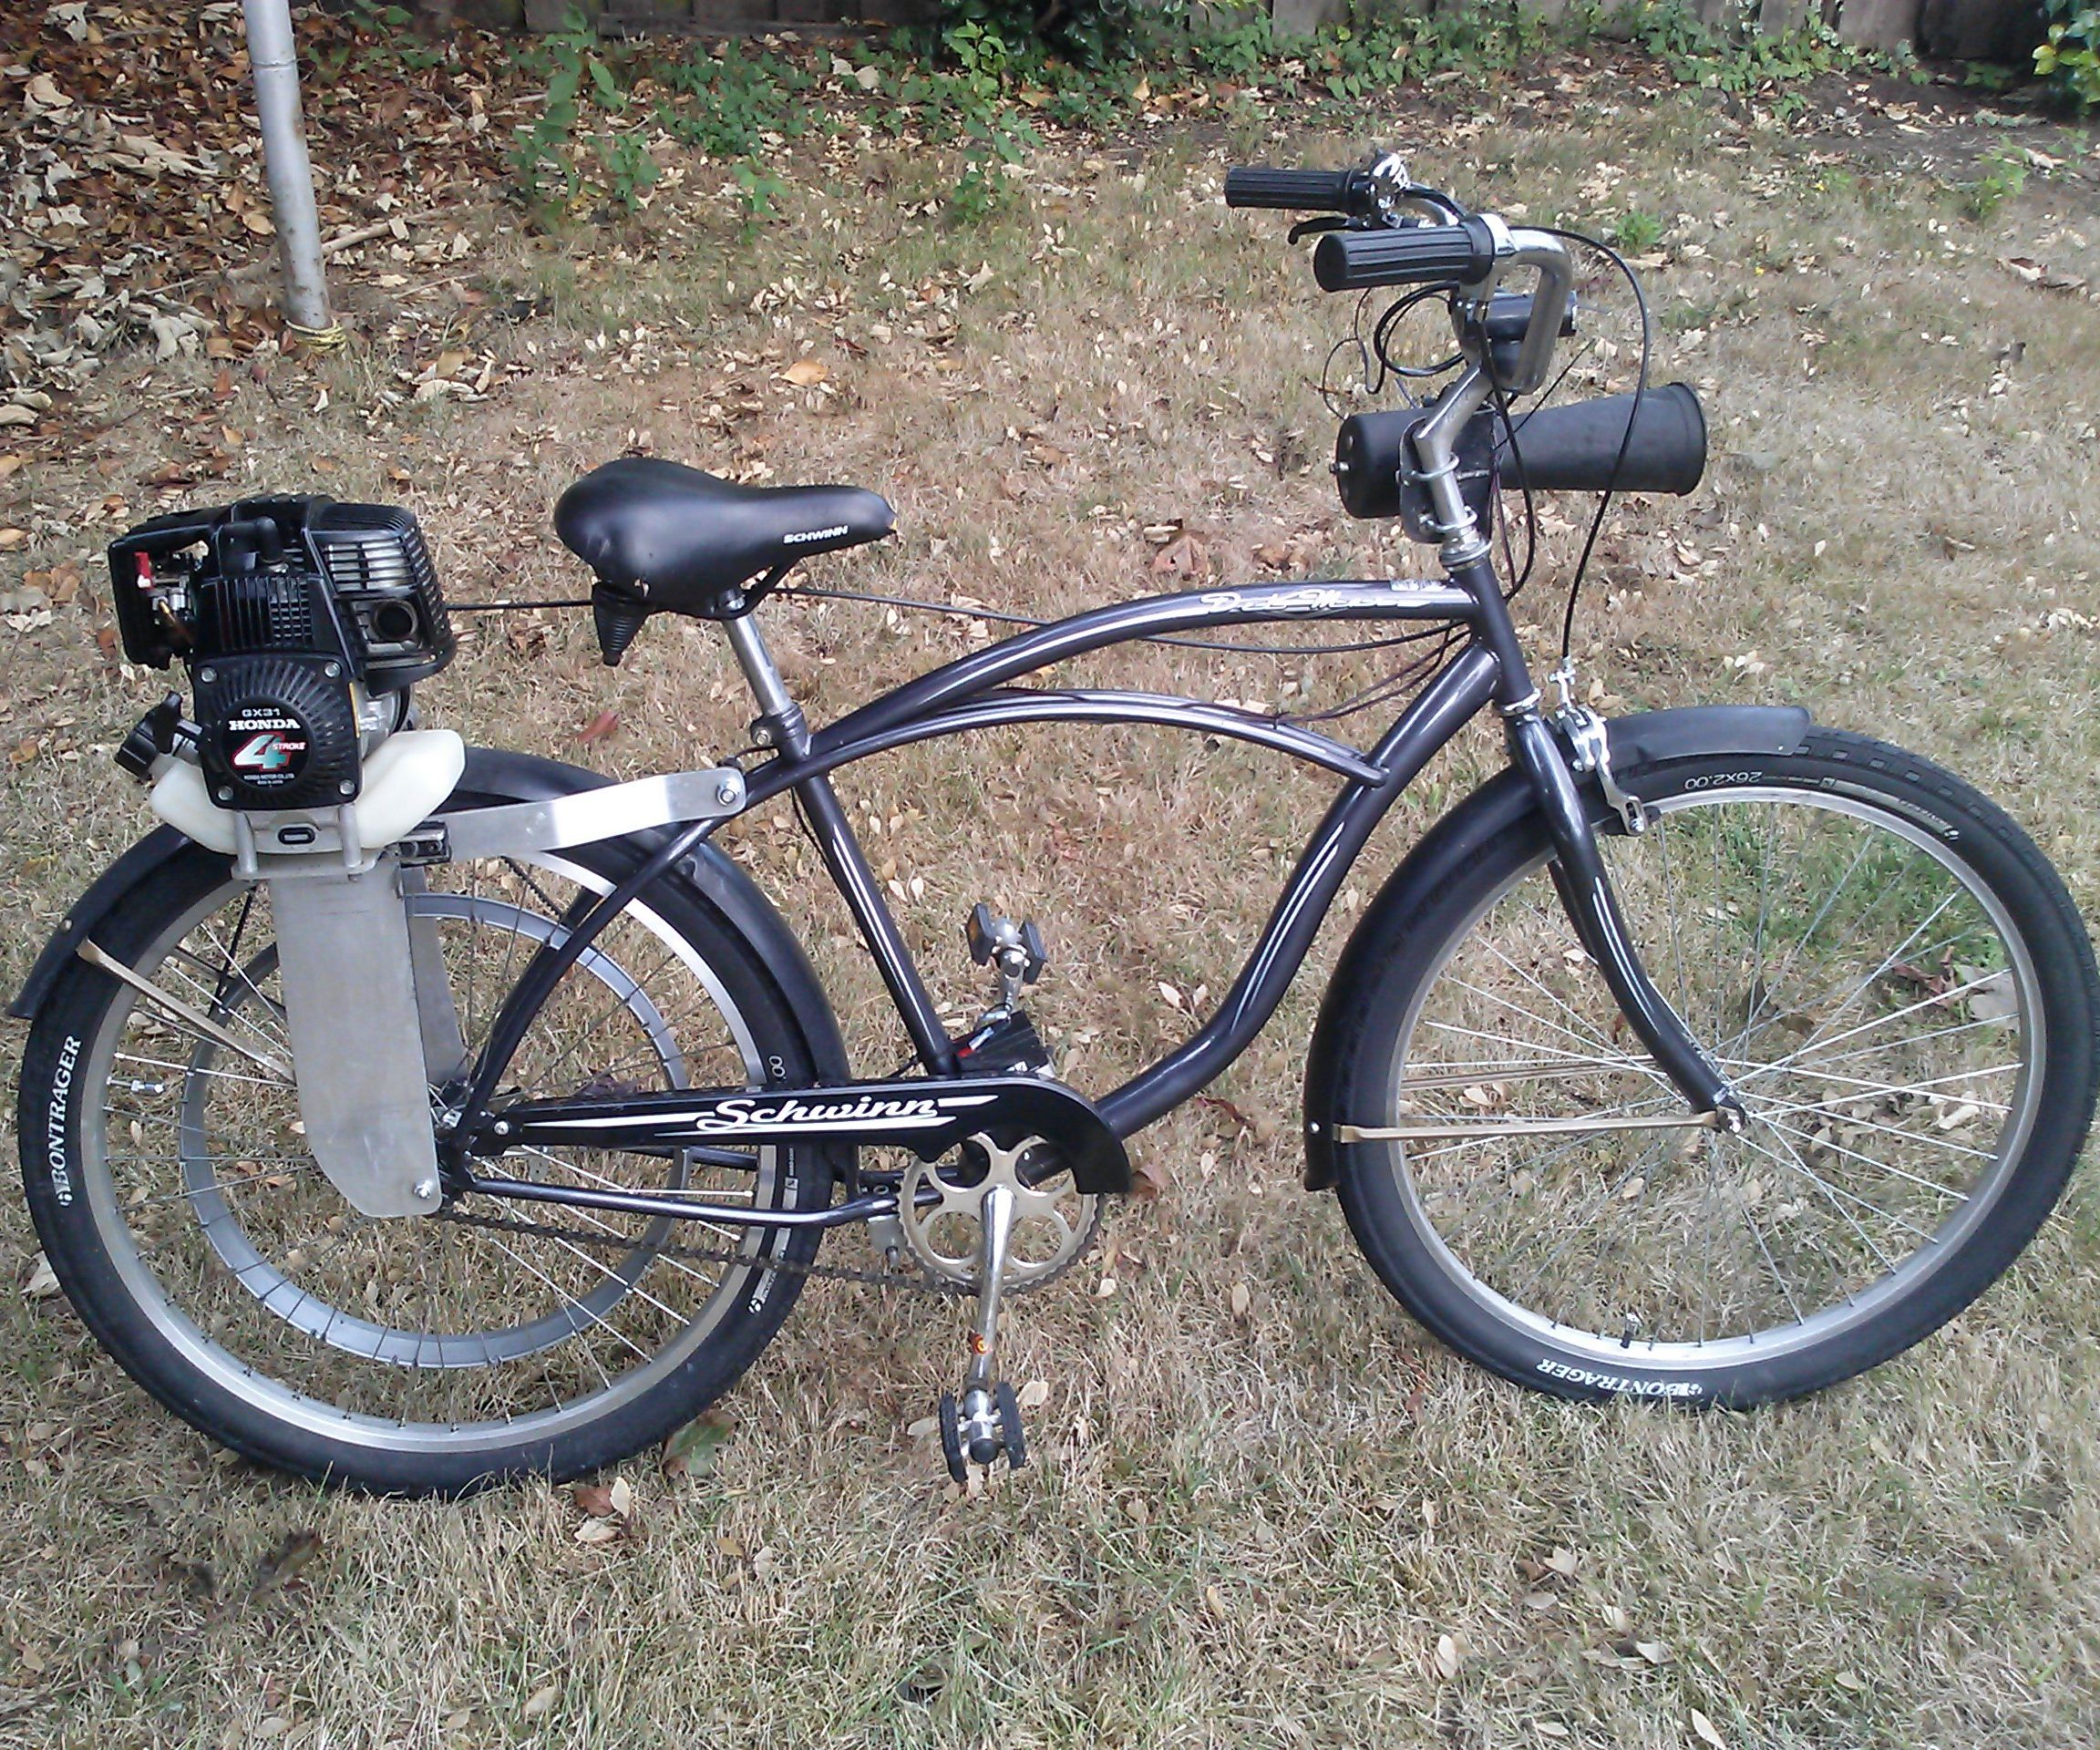 Honda Motorized Bicycle: 5 Steps (with Pictures)